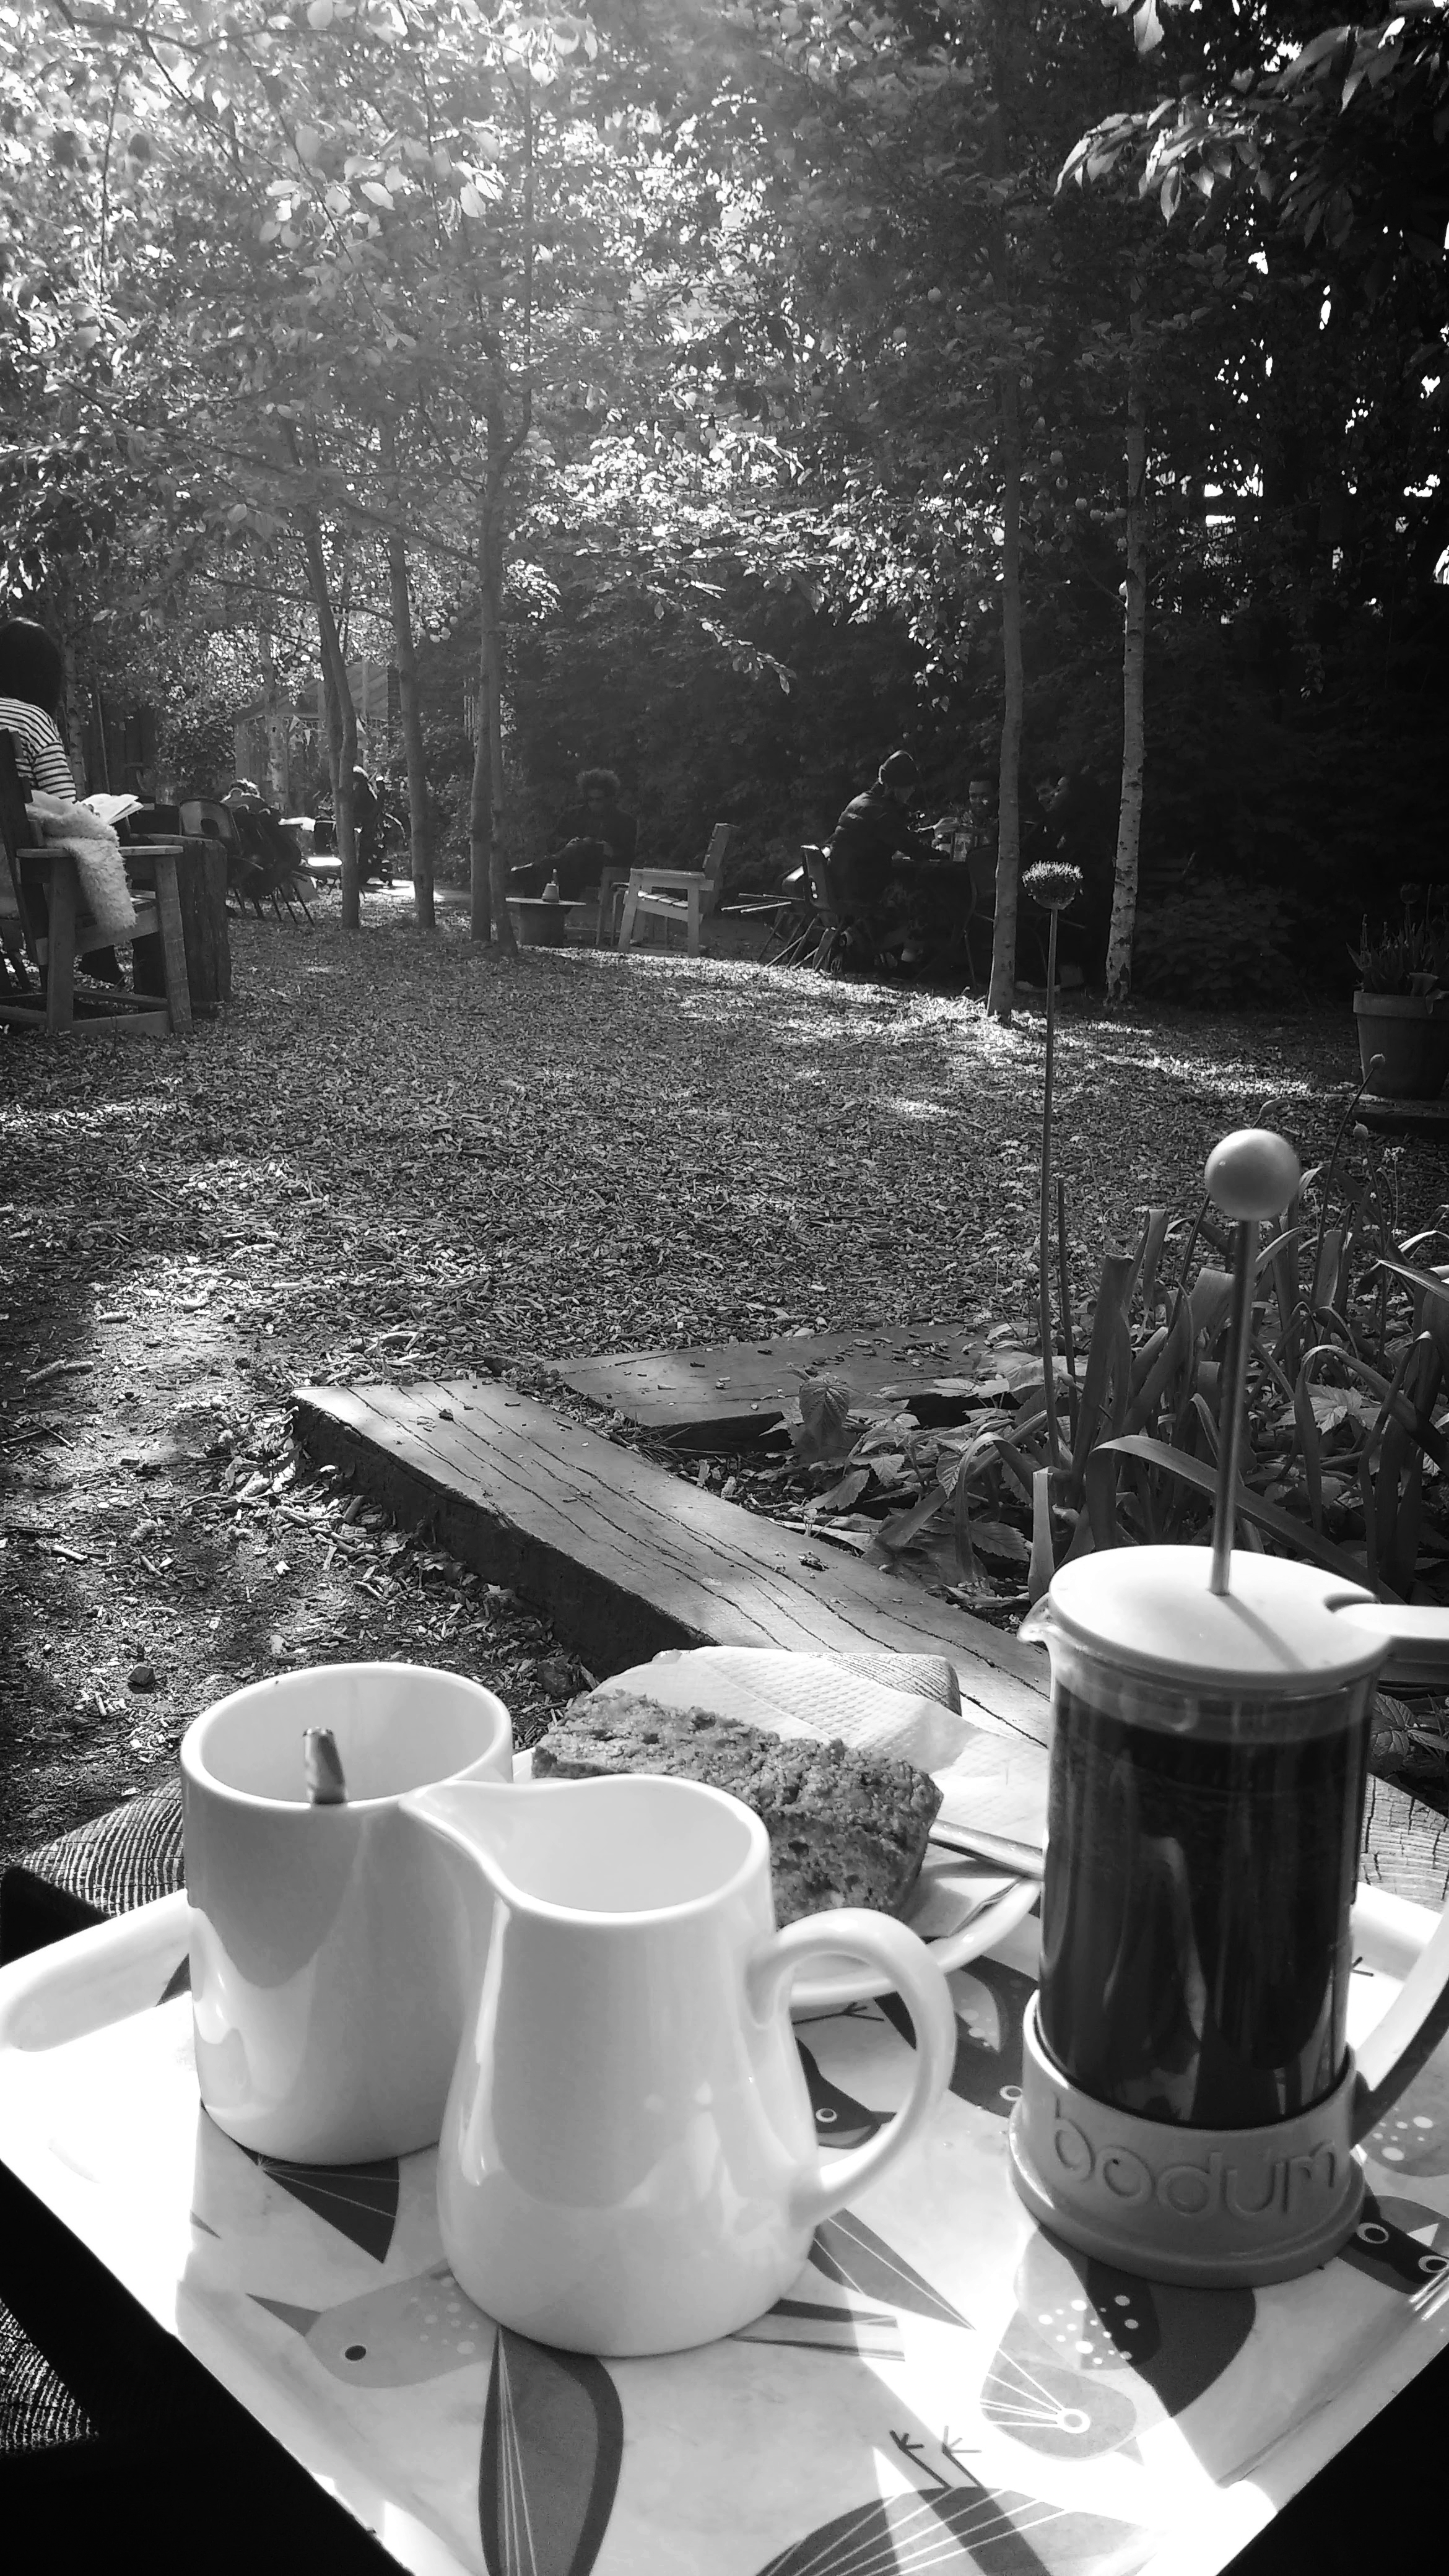 Coffee and carrot cake a Friday afternoon in spring at Dalston Eastern Curve Garden